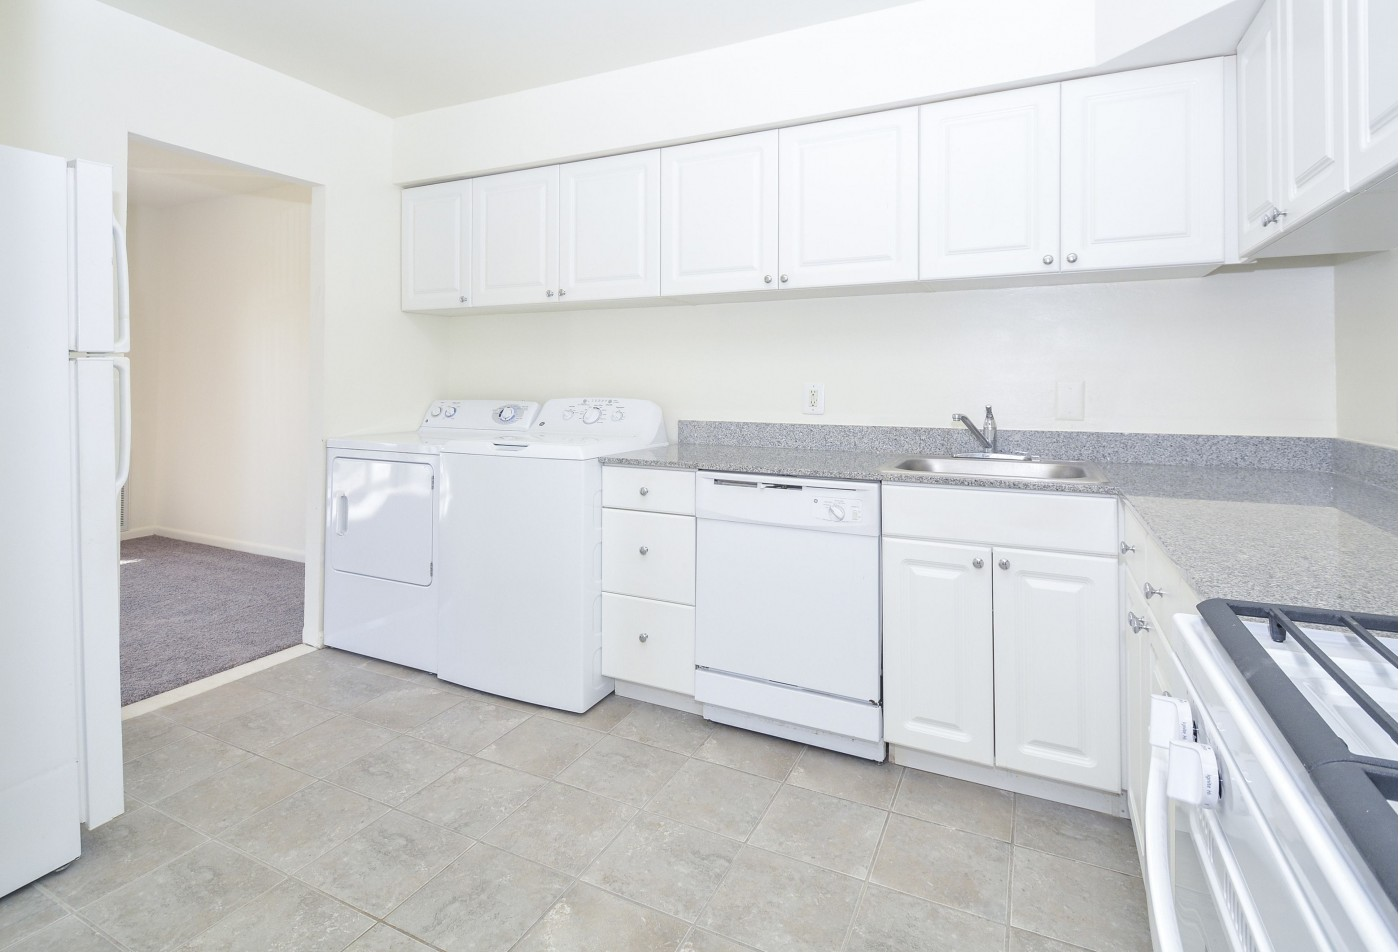 State-of-the-Art Kitchen | Berwyn PA Apartment Homes | Main Line Berwyn Apartments